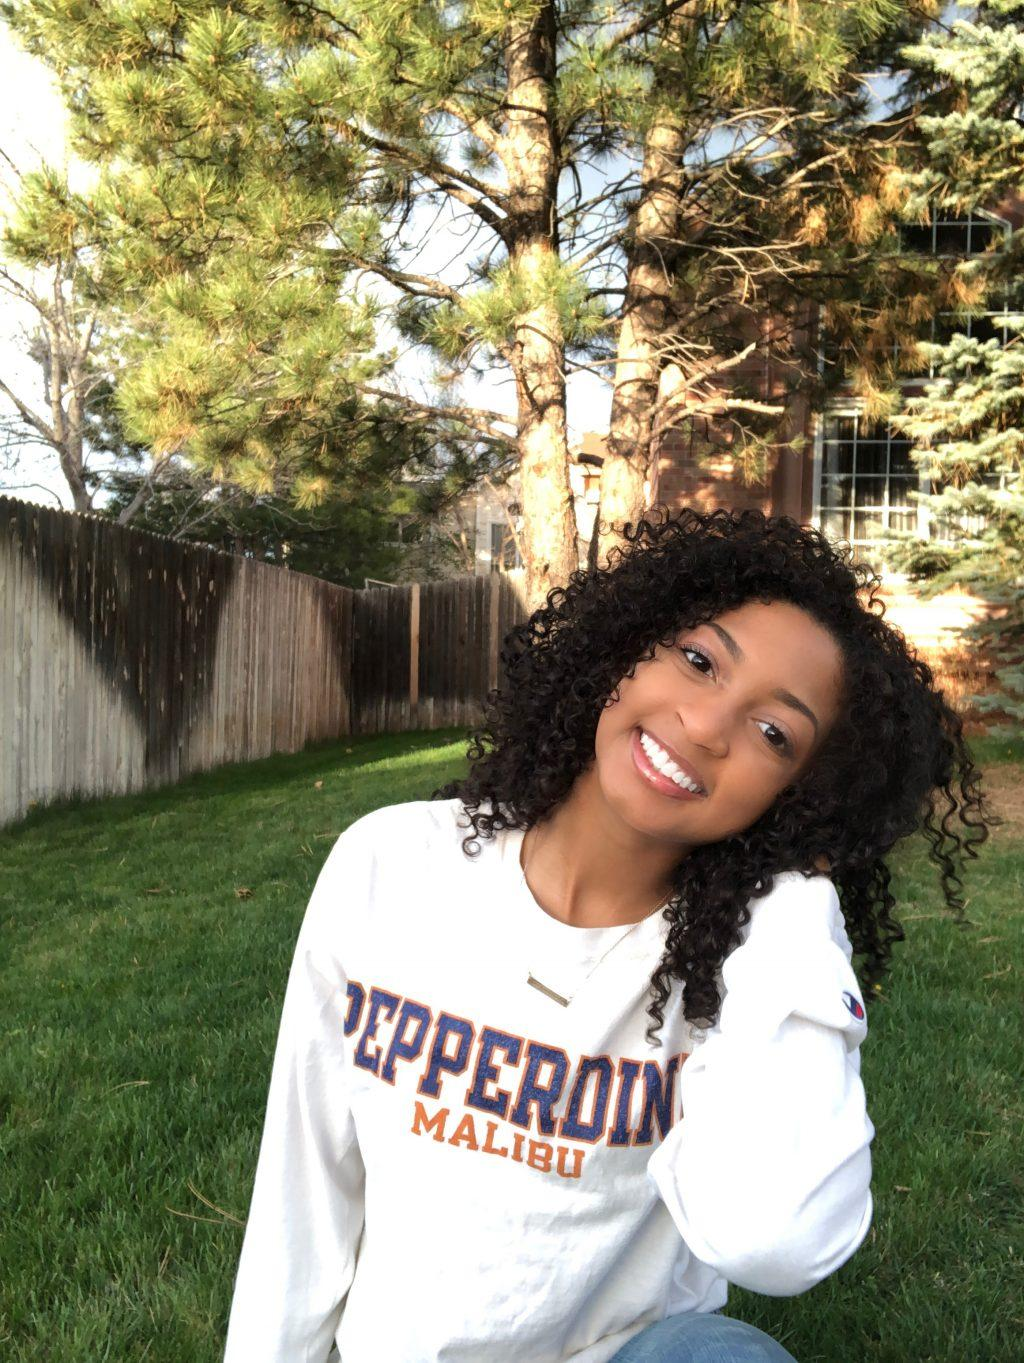 Biology major Pearson smiles, proudly sporting her Pepperdine gear in her backyard. She said she hopes to continue to grow her faith at the University.